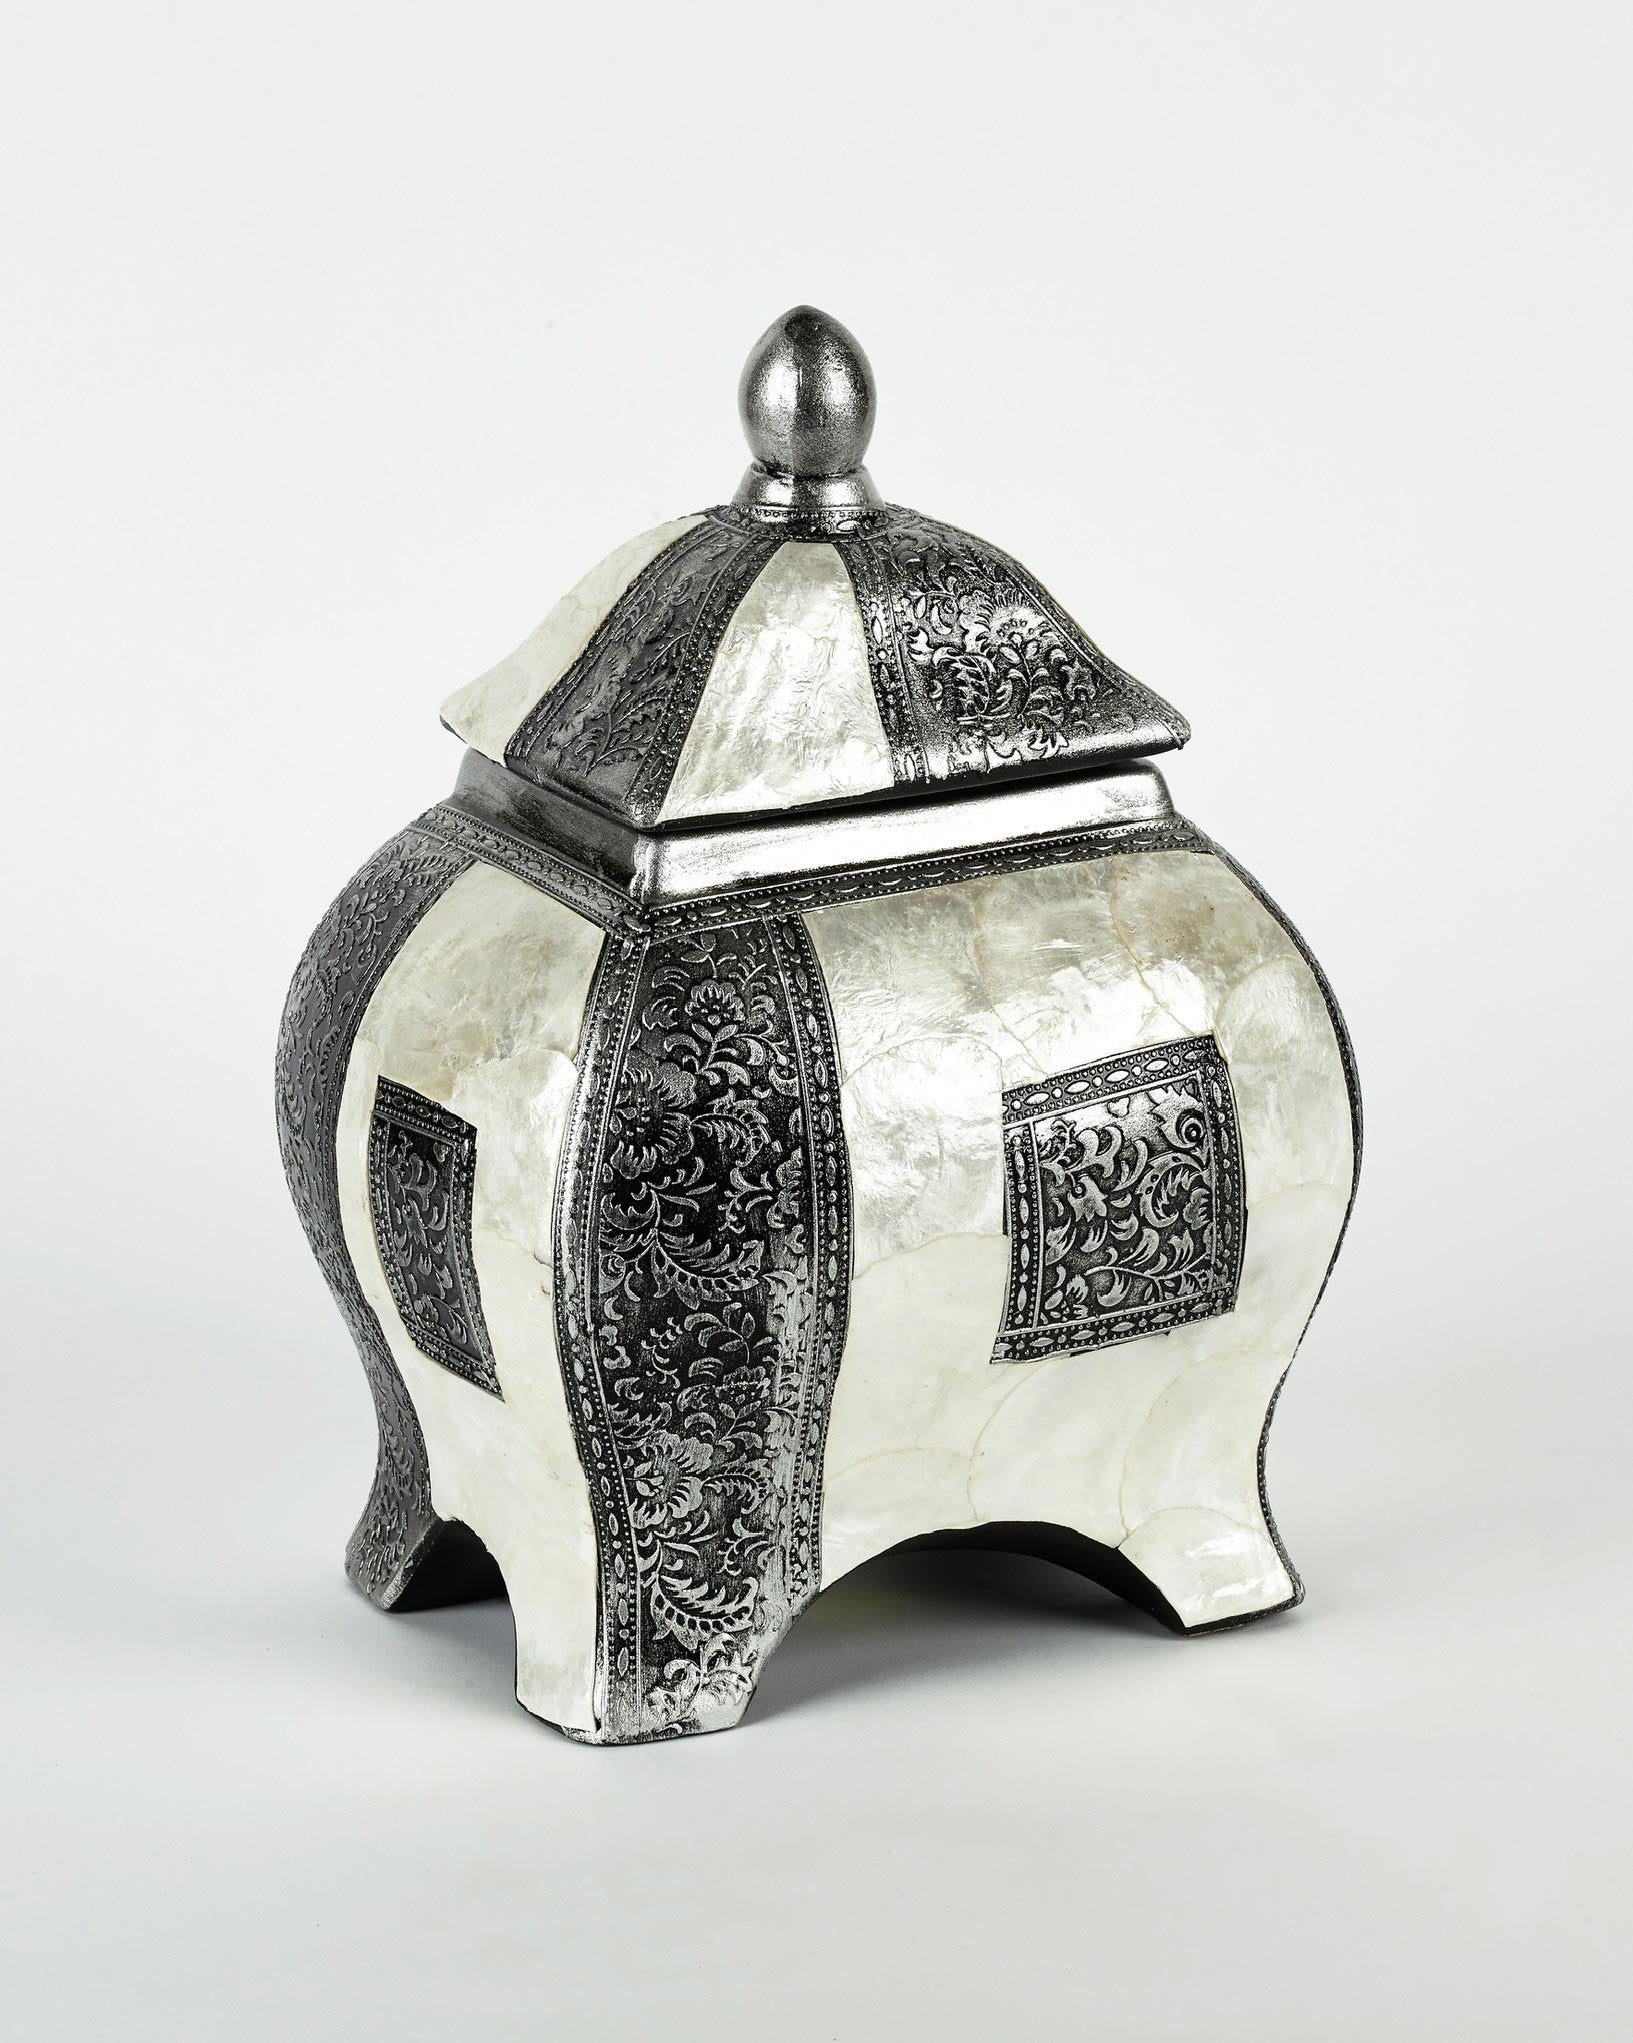 Decorative White and Silver Ceramic Piece (CHECK)